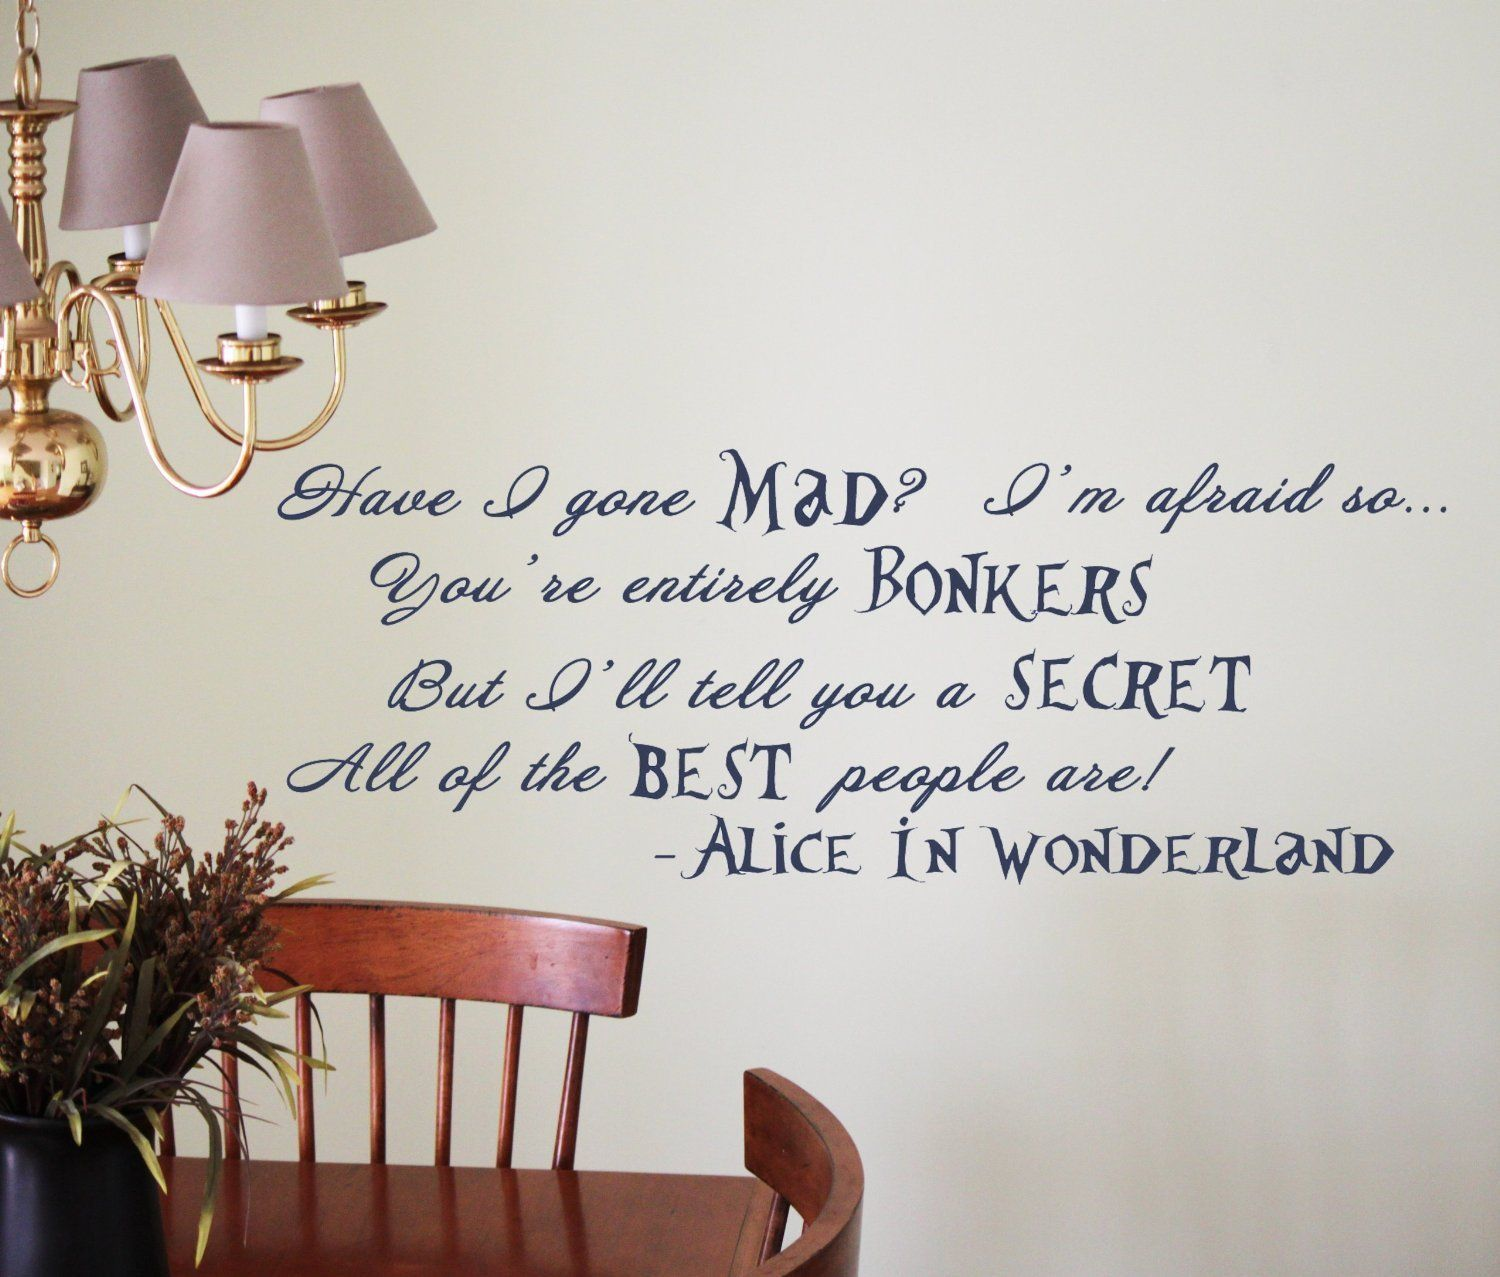 Amazon Com Best People Are Bonkers Alice In Wonderland Quote Vinyl Wall Decal Wall Decor Sticker Alice And Wonderland Quotes Wonderland Quotes Wonderland [ 1277 x 1500 Pixel ]